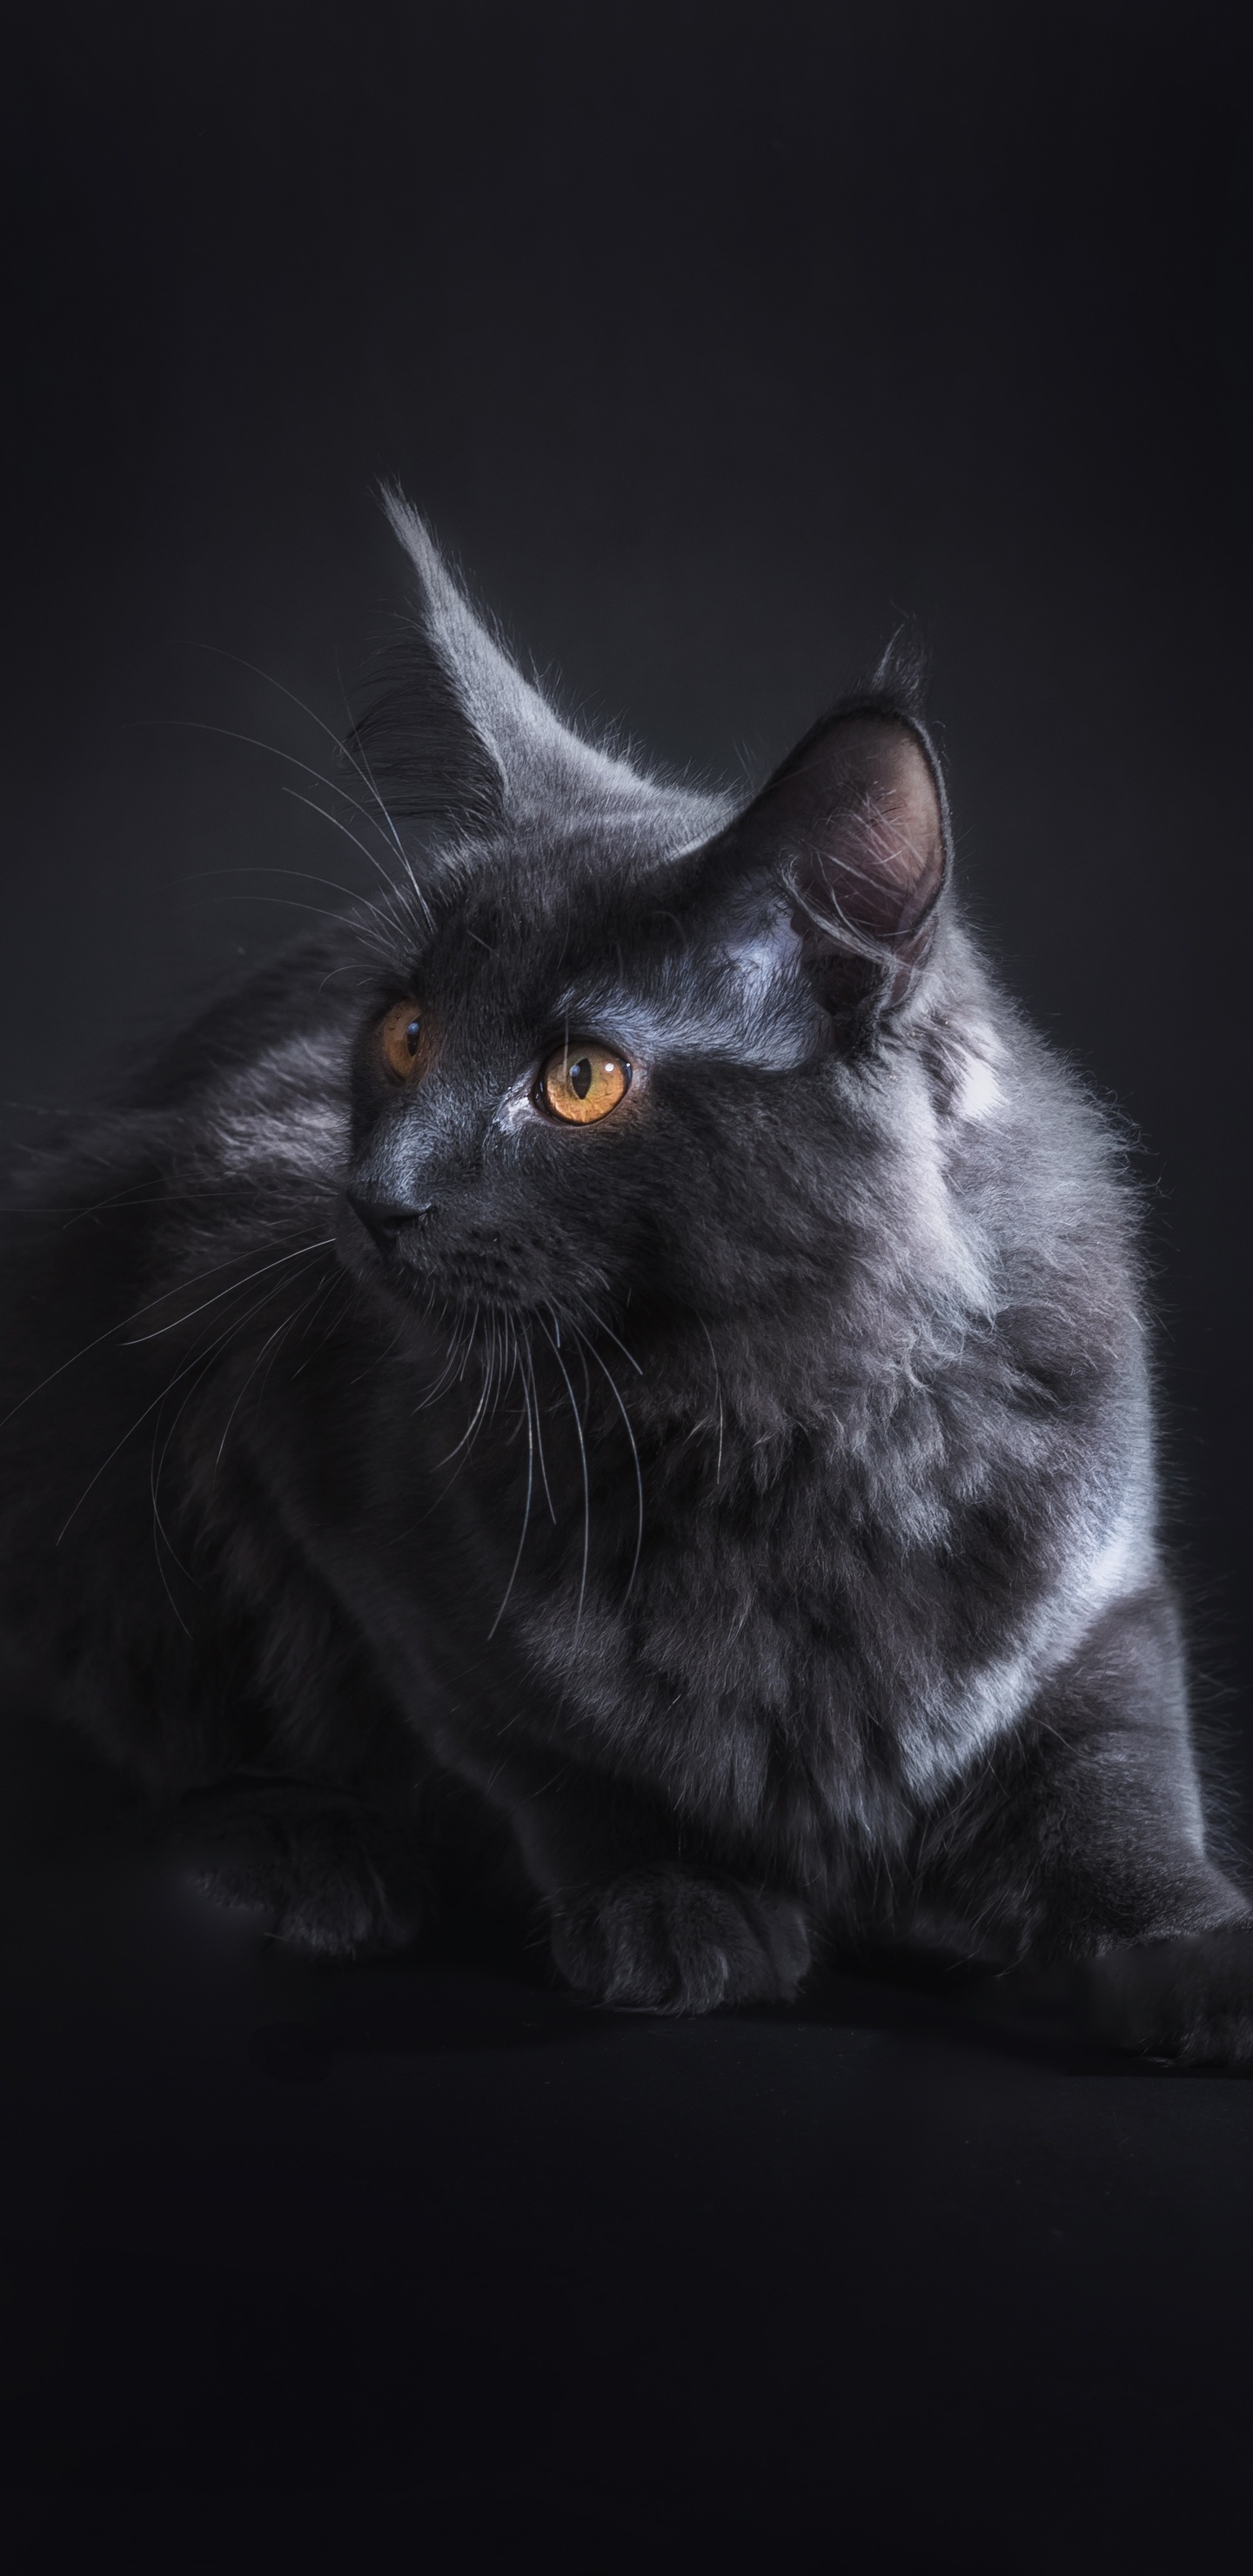 1440x2960 Black Cat 5k Samsung Galaxy Note 9 8 S9 S8 S8 Qhd Hd 4k